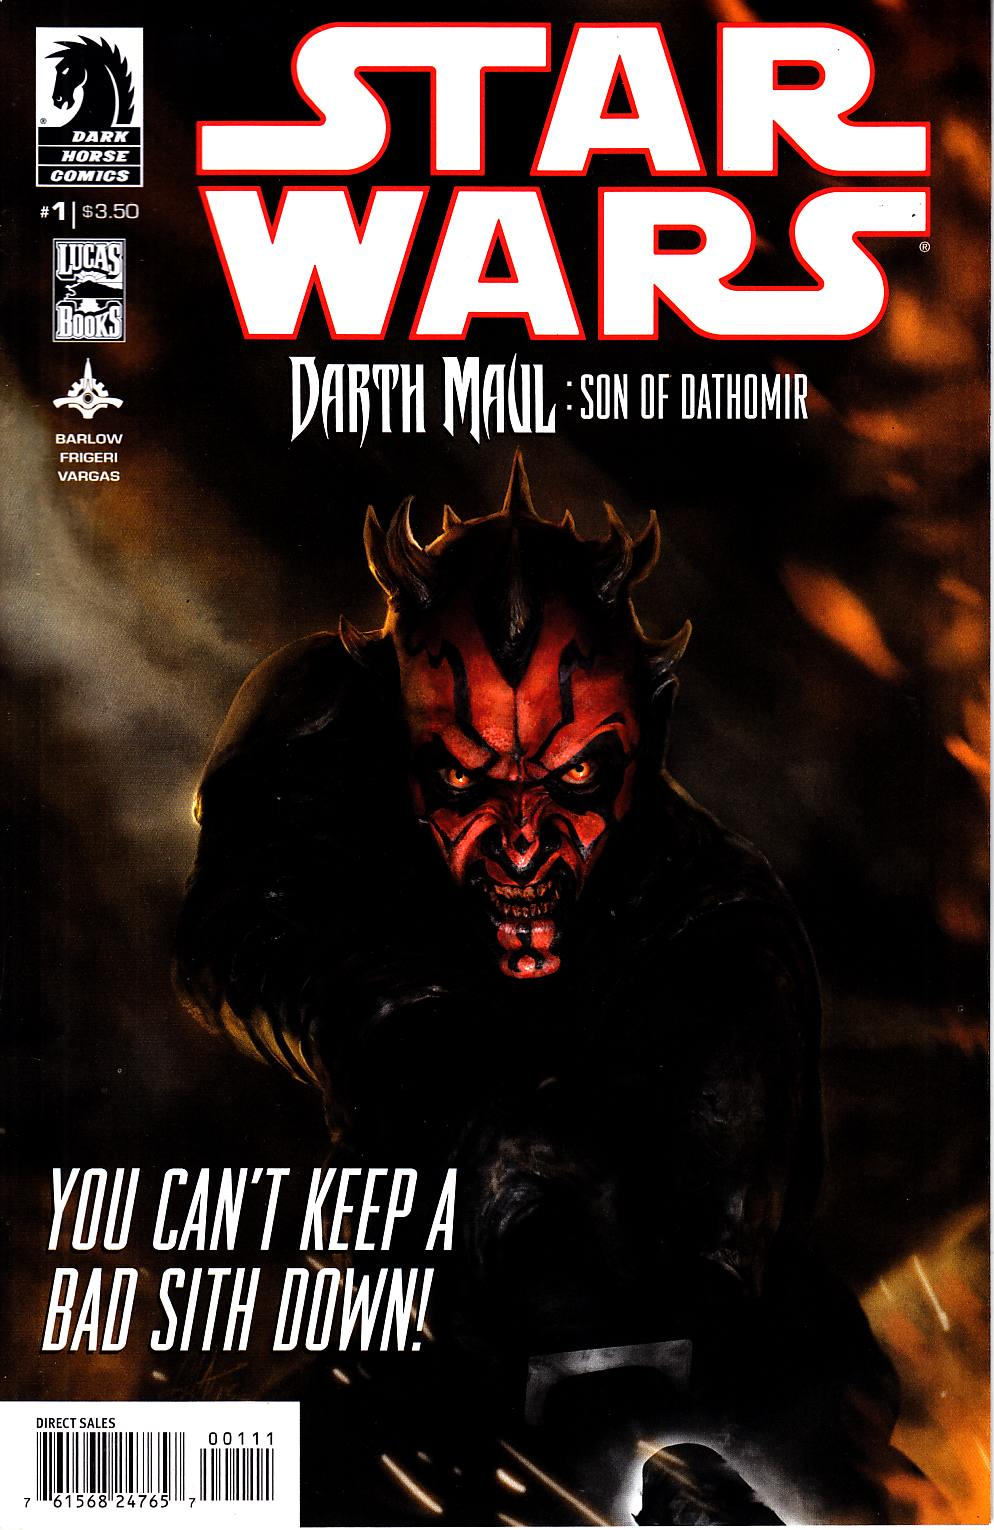 Star Wars Darth Maul Son Of Dathomir #1 [Dark Horse Comic] THUMBNAIL